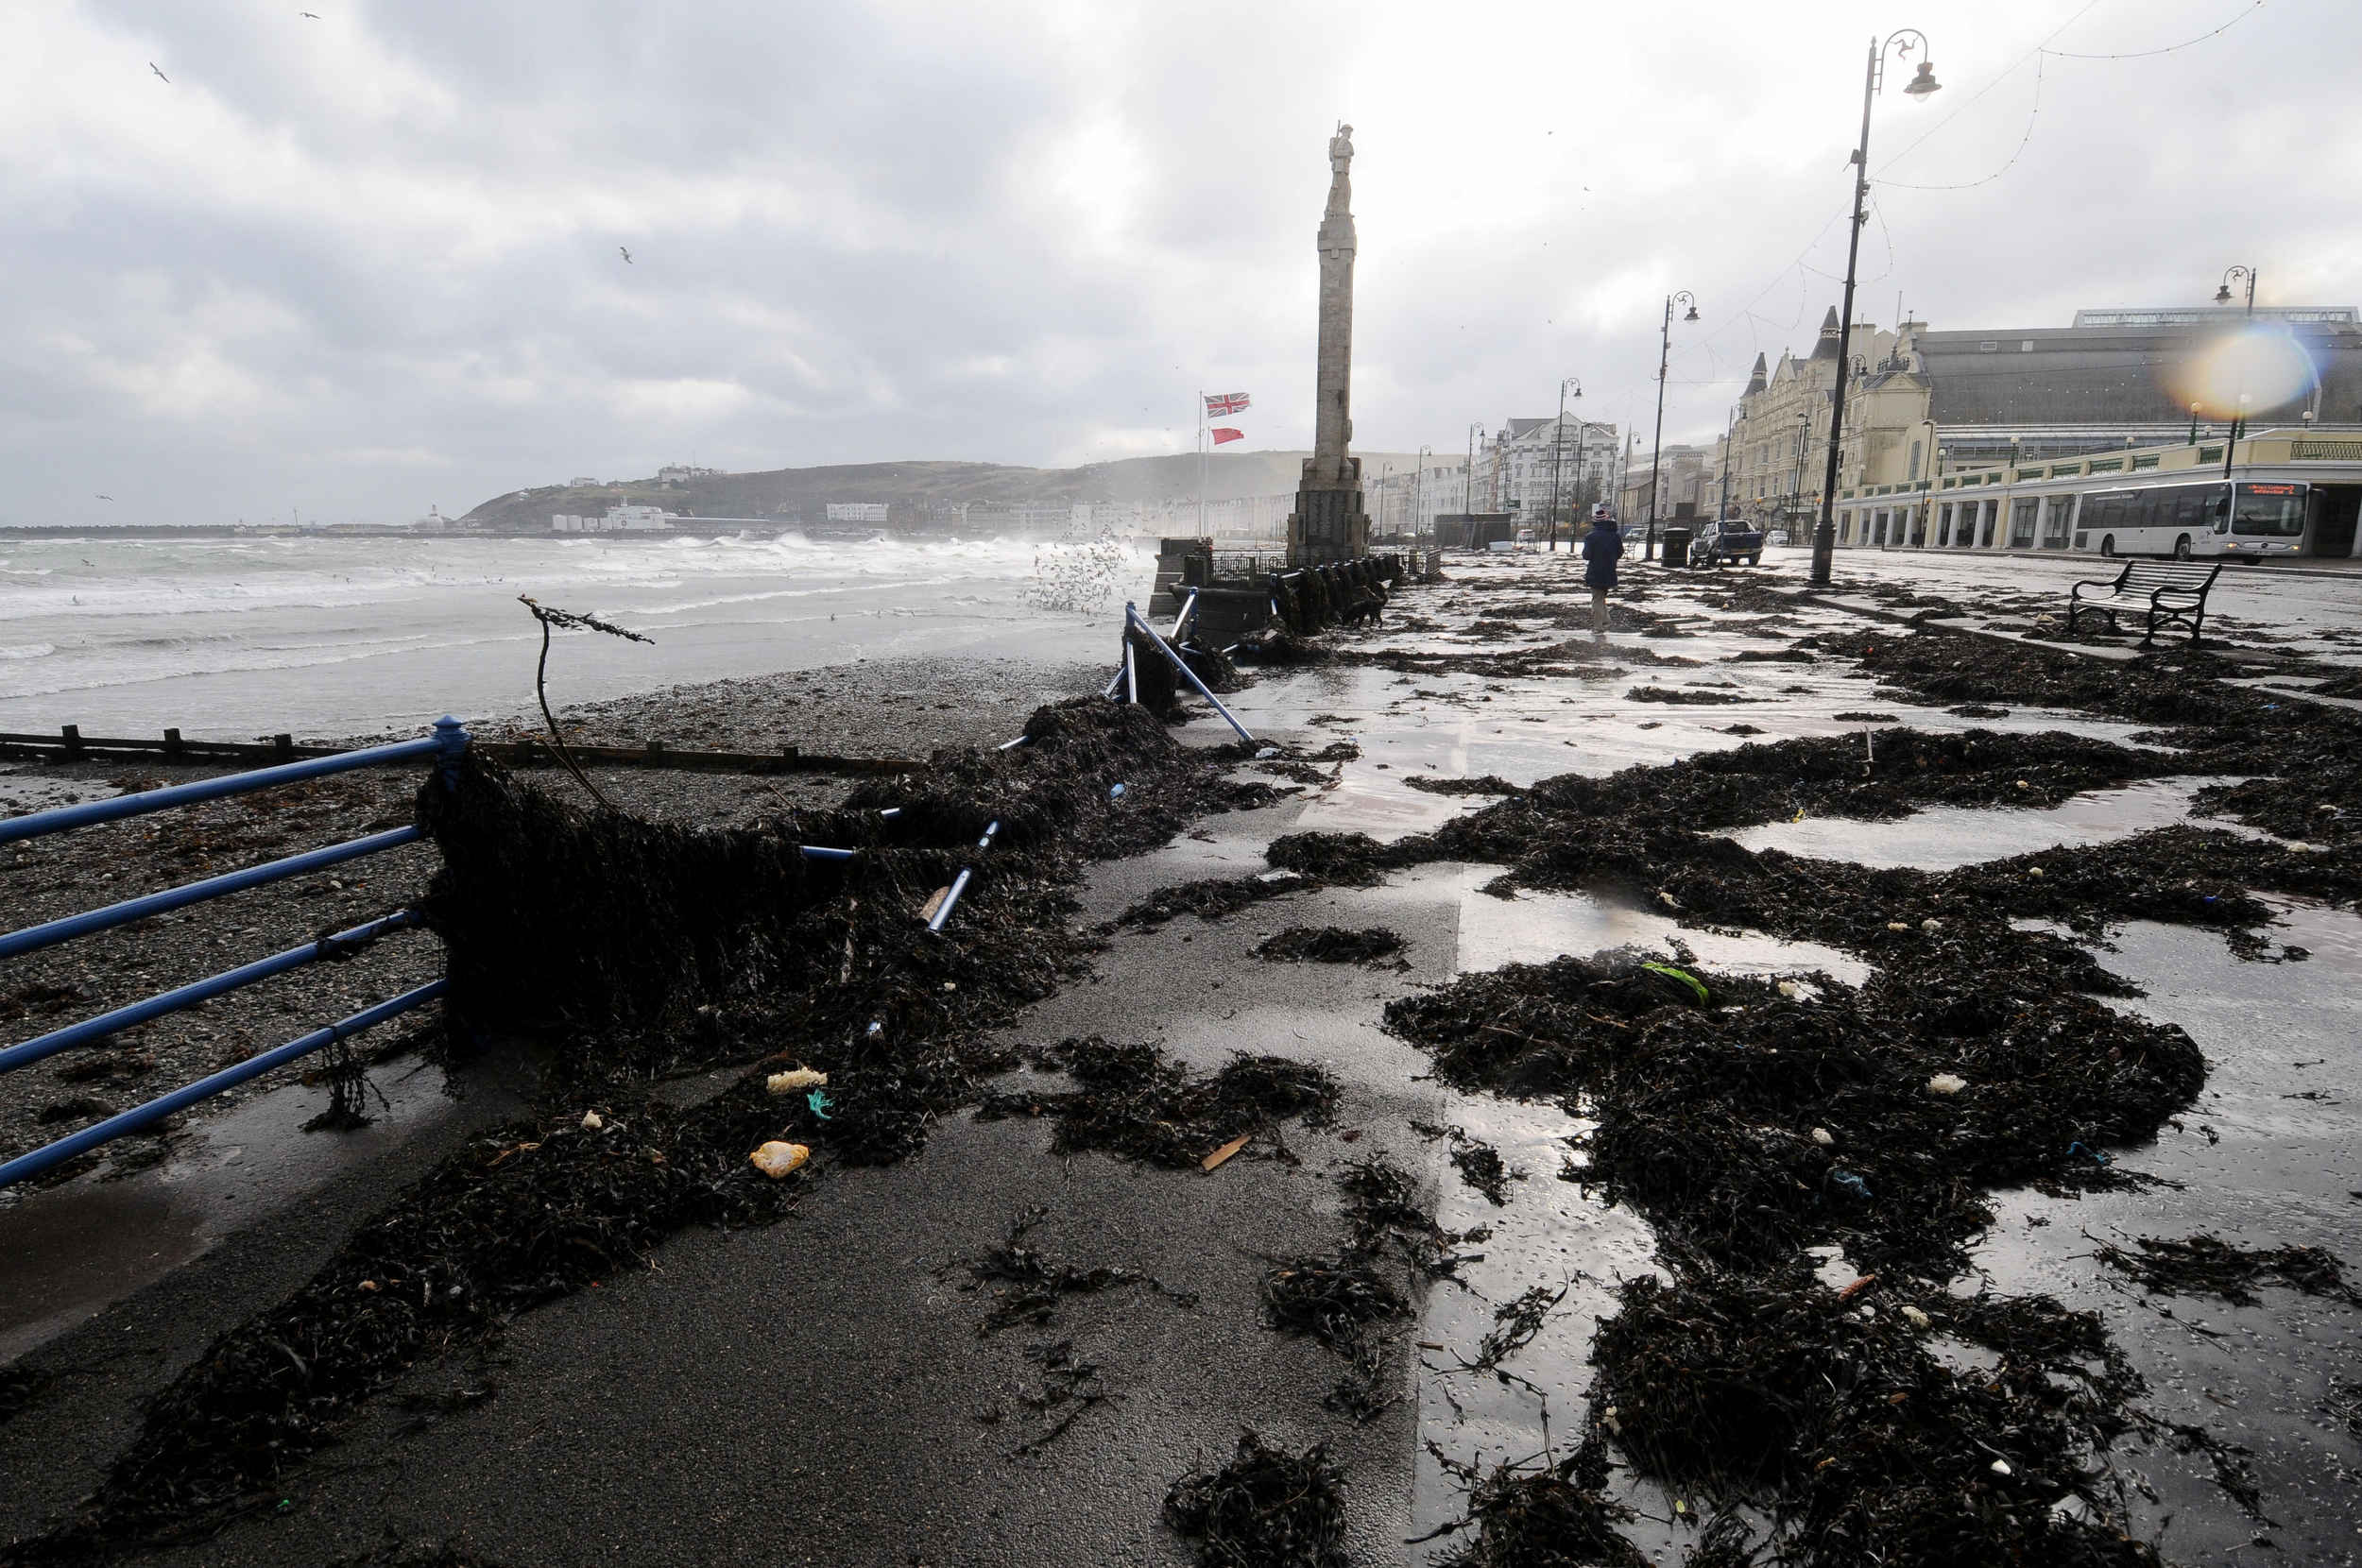 Breaking waves and flying debris during Storm Emma caused damage near the War Memorial on Douglas Promenade